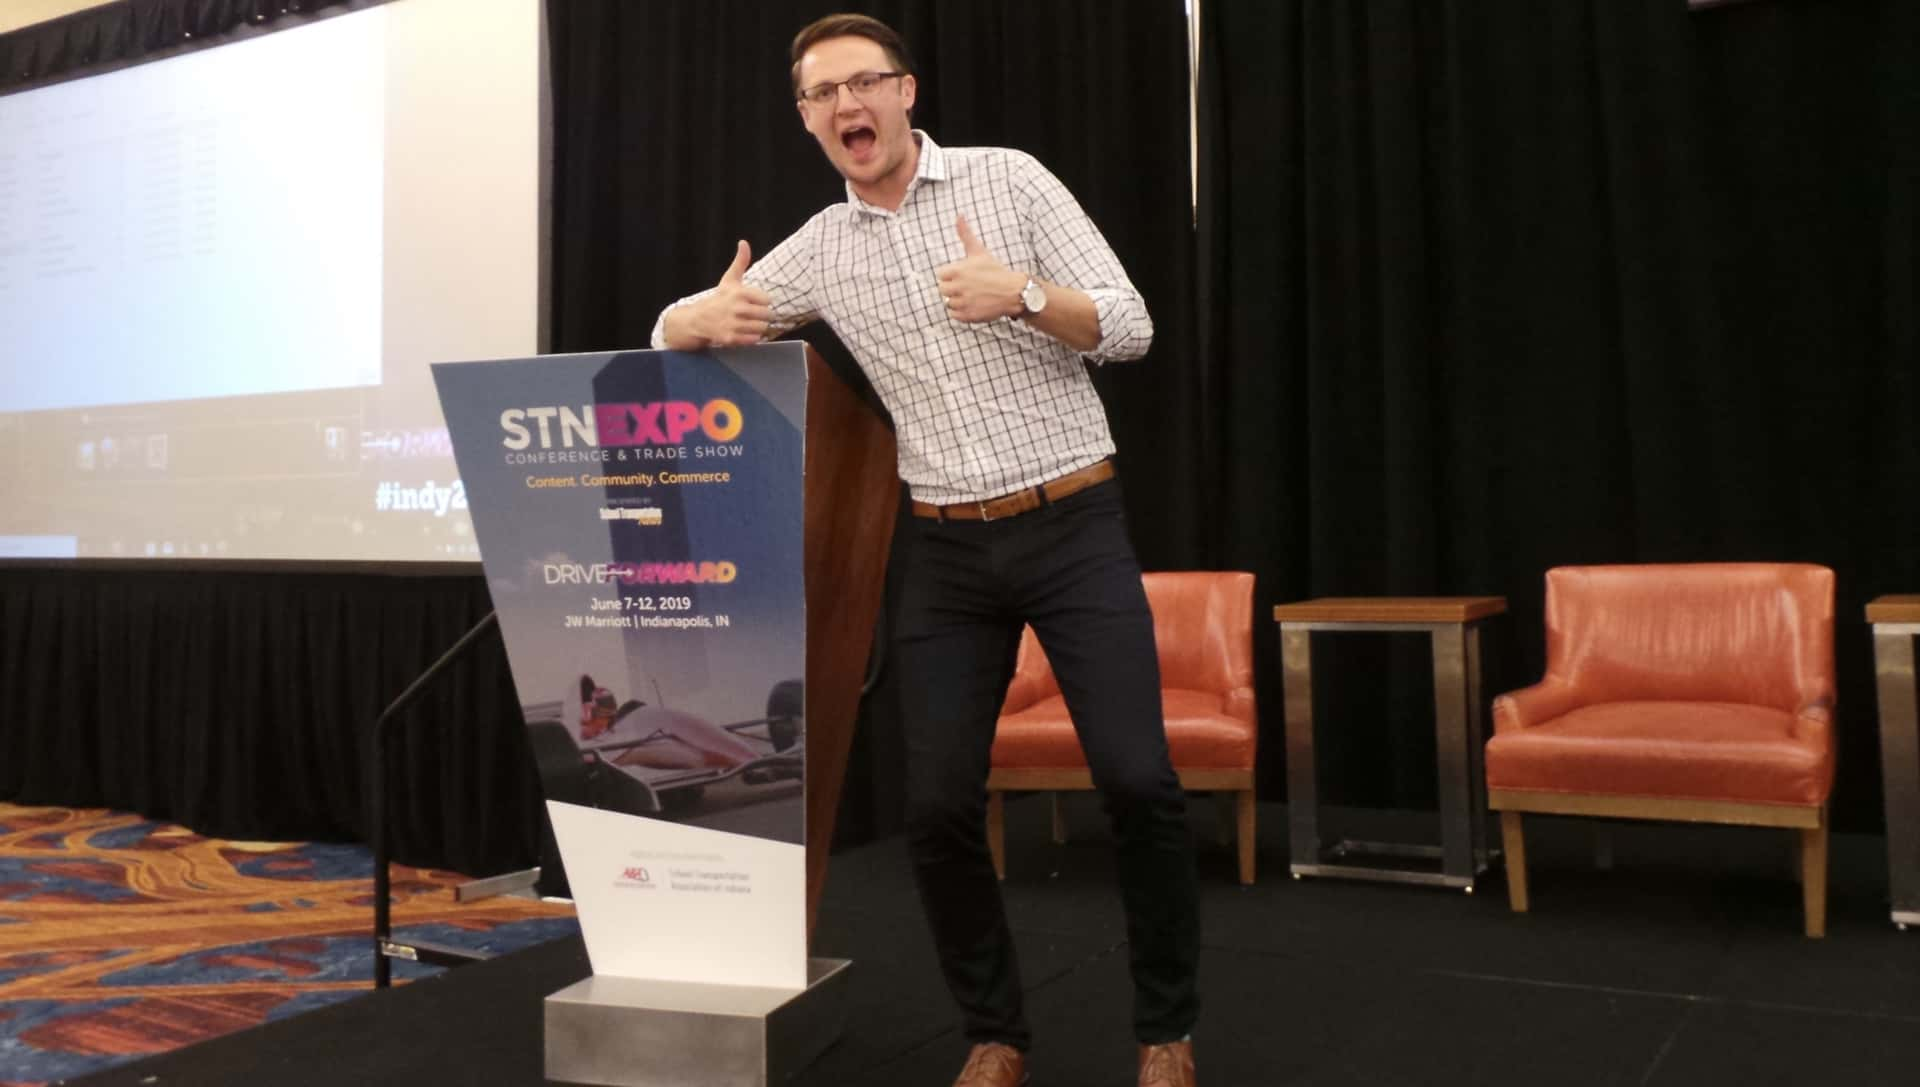 A happy Ryan Avery celebrates after his great keynote presentation. (Photo by David George.)